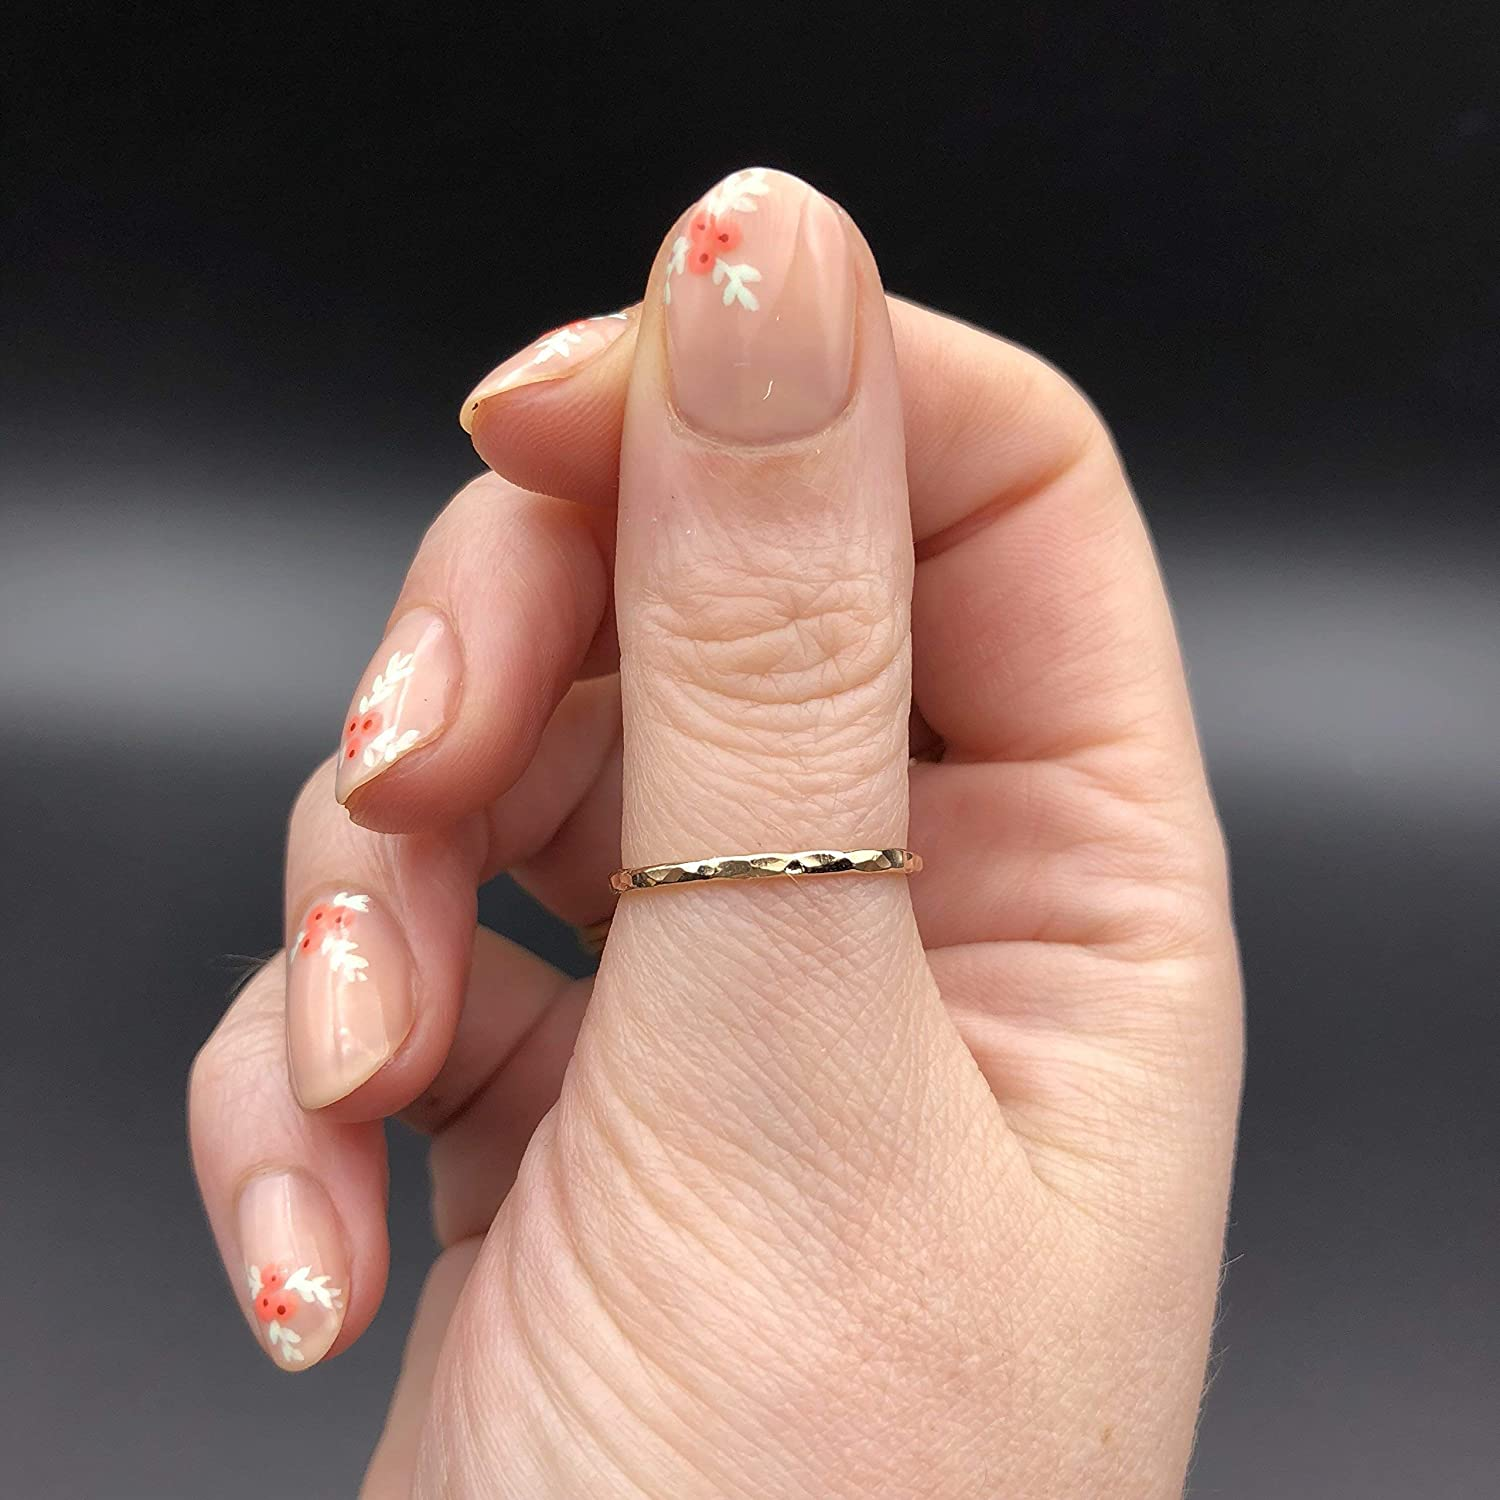 Dainty Little Plain Band Size 4 Gold Thumb Ring